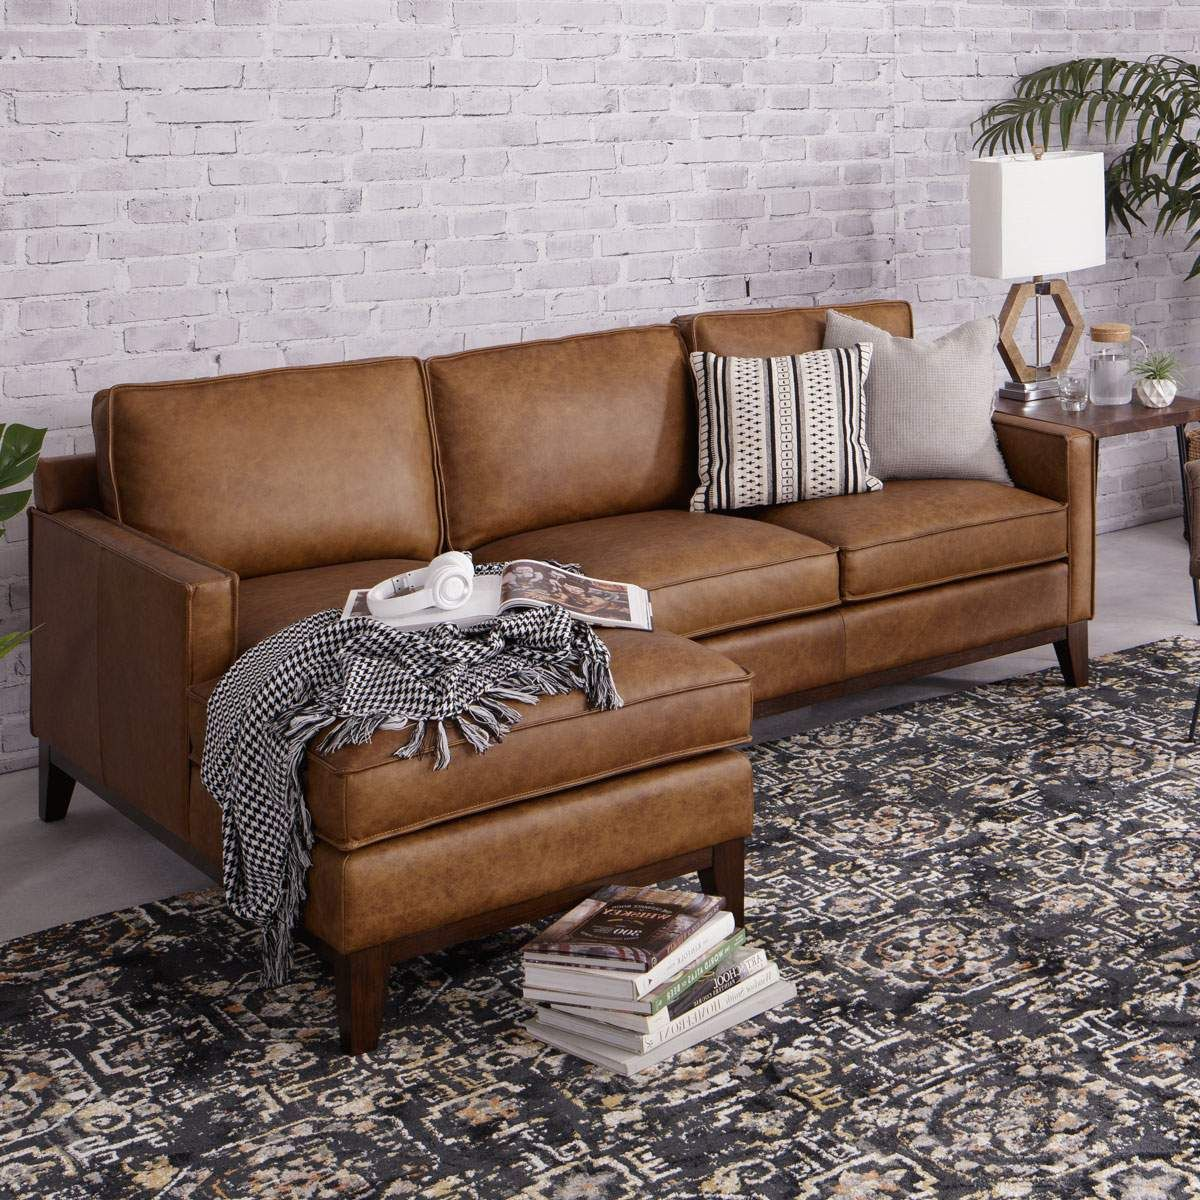 Awesome Calvin Raf Loveseat Laf Chaise In Cognac Jeromes Squirreltailoven Fun Painted Chair Ideas Images Squirreltailovenorg